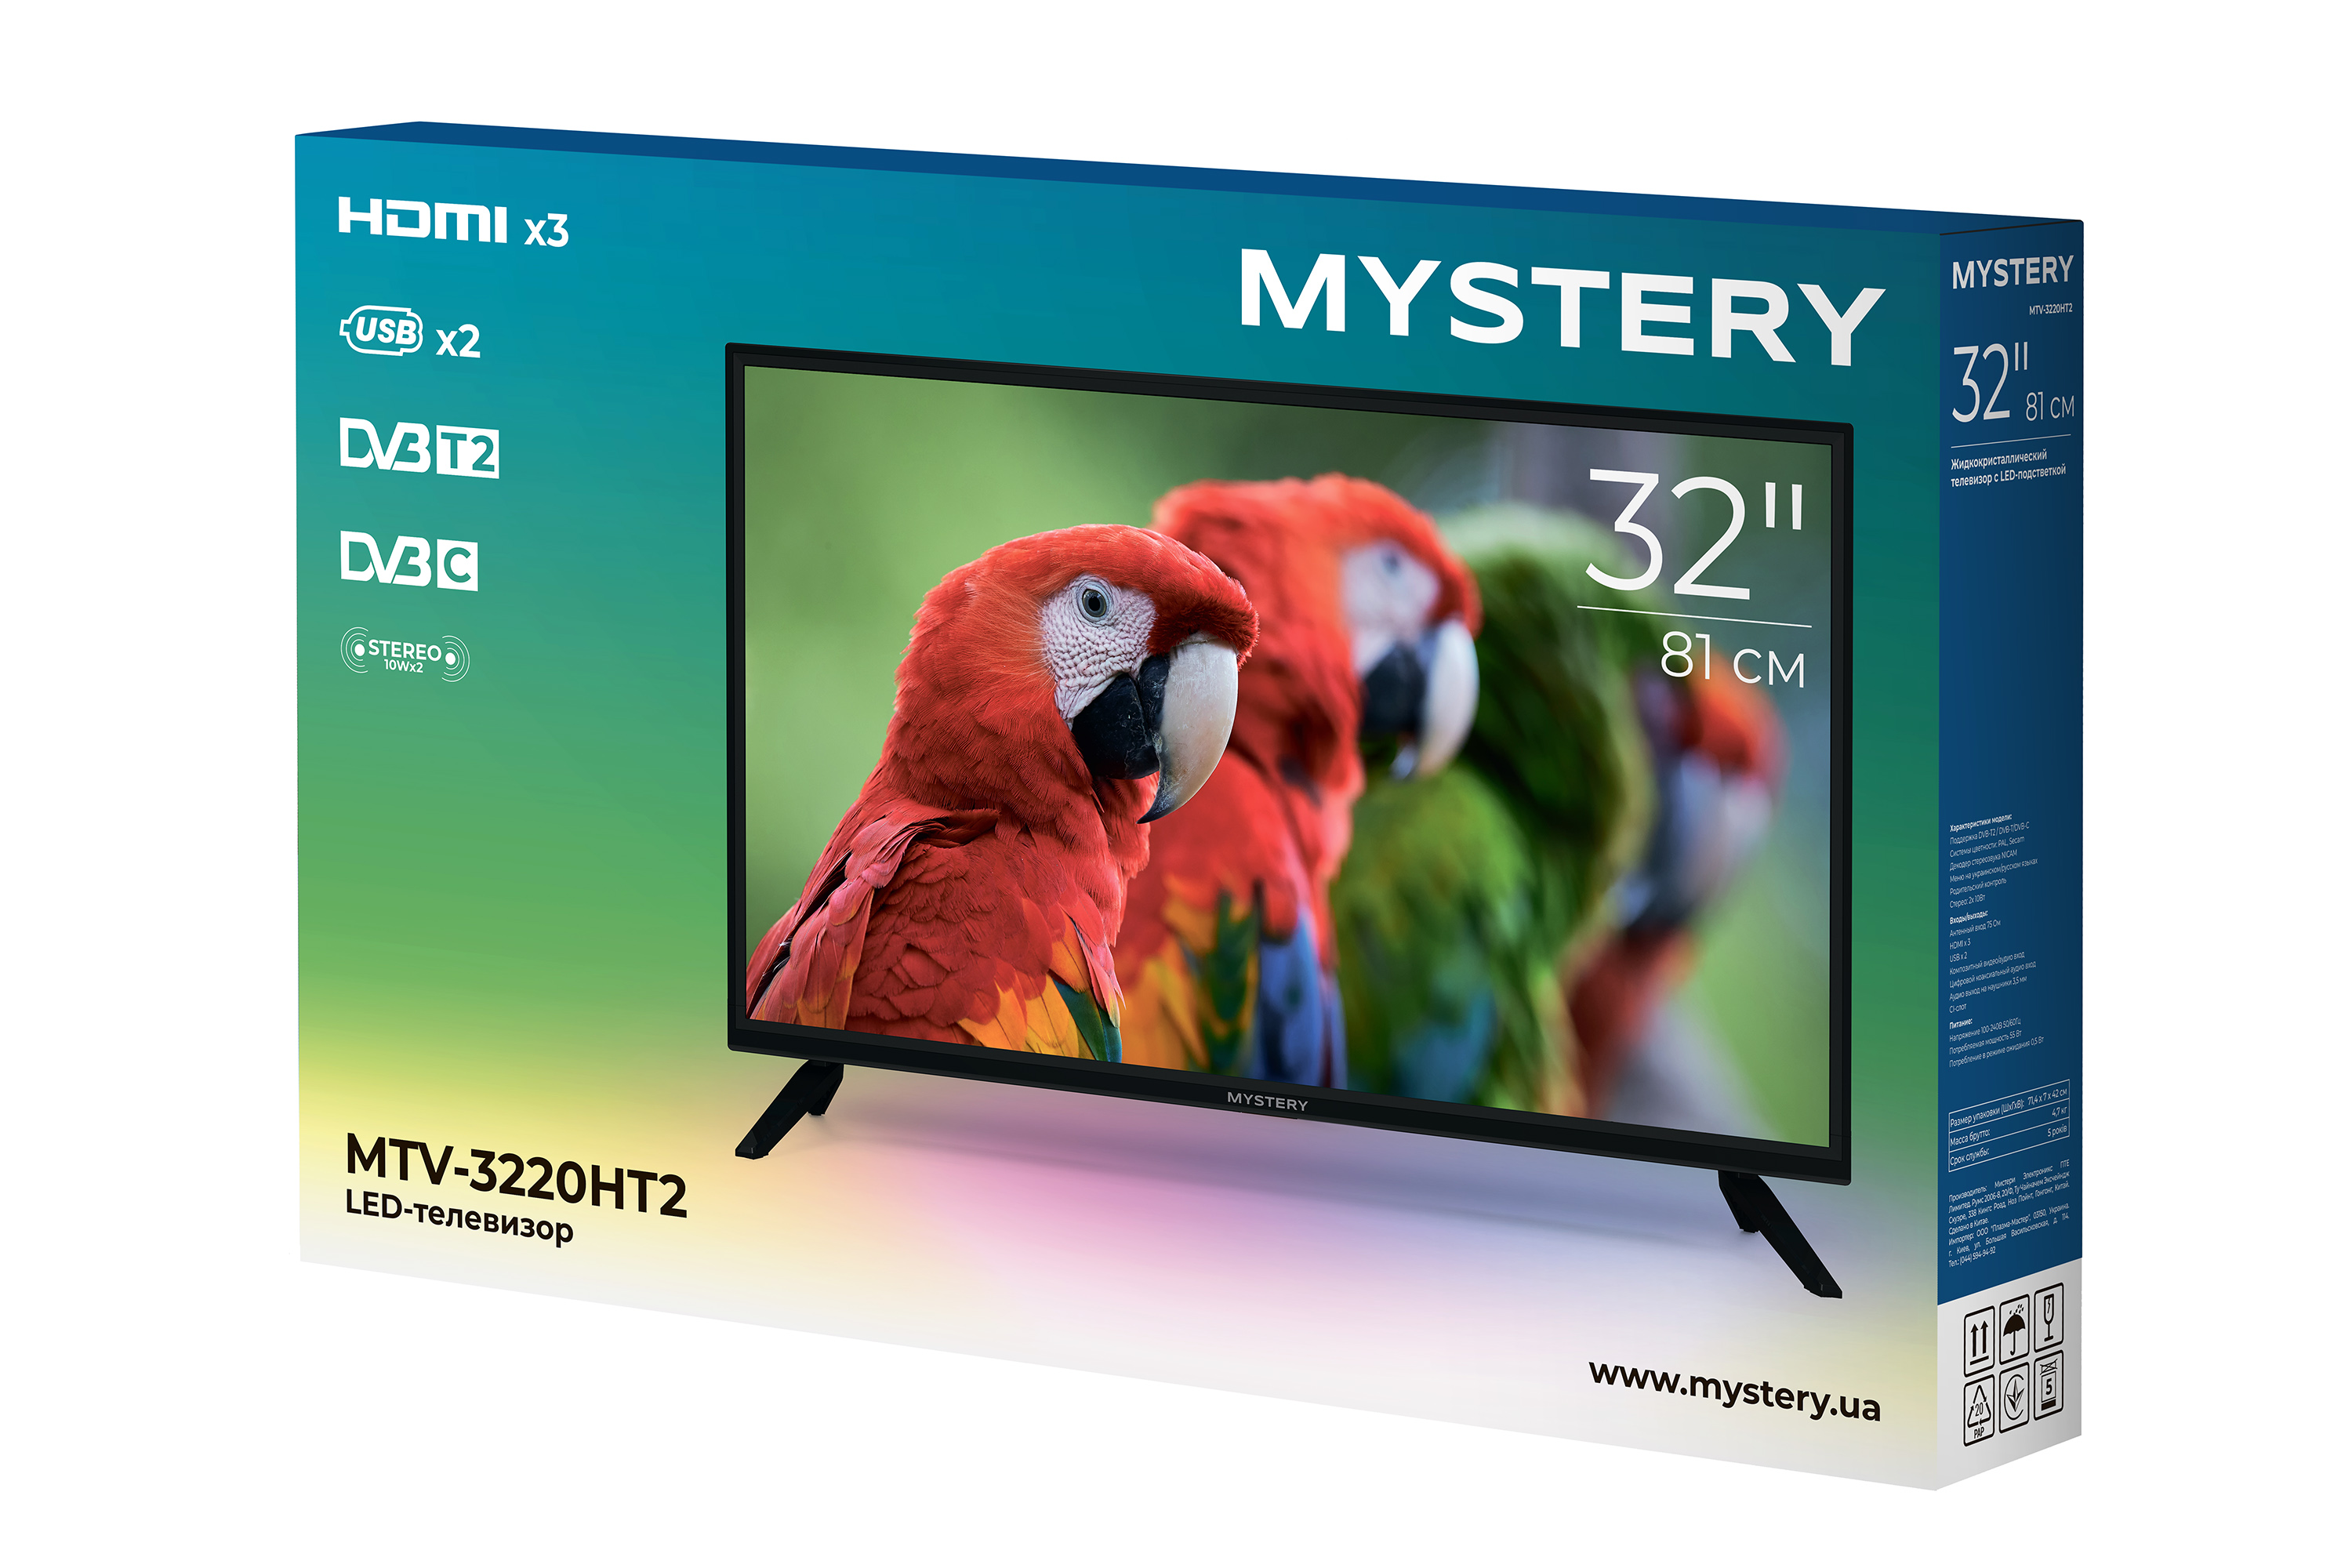 Mystery MTV-3220HT2 TV